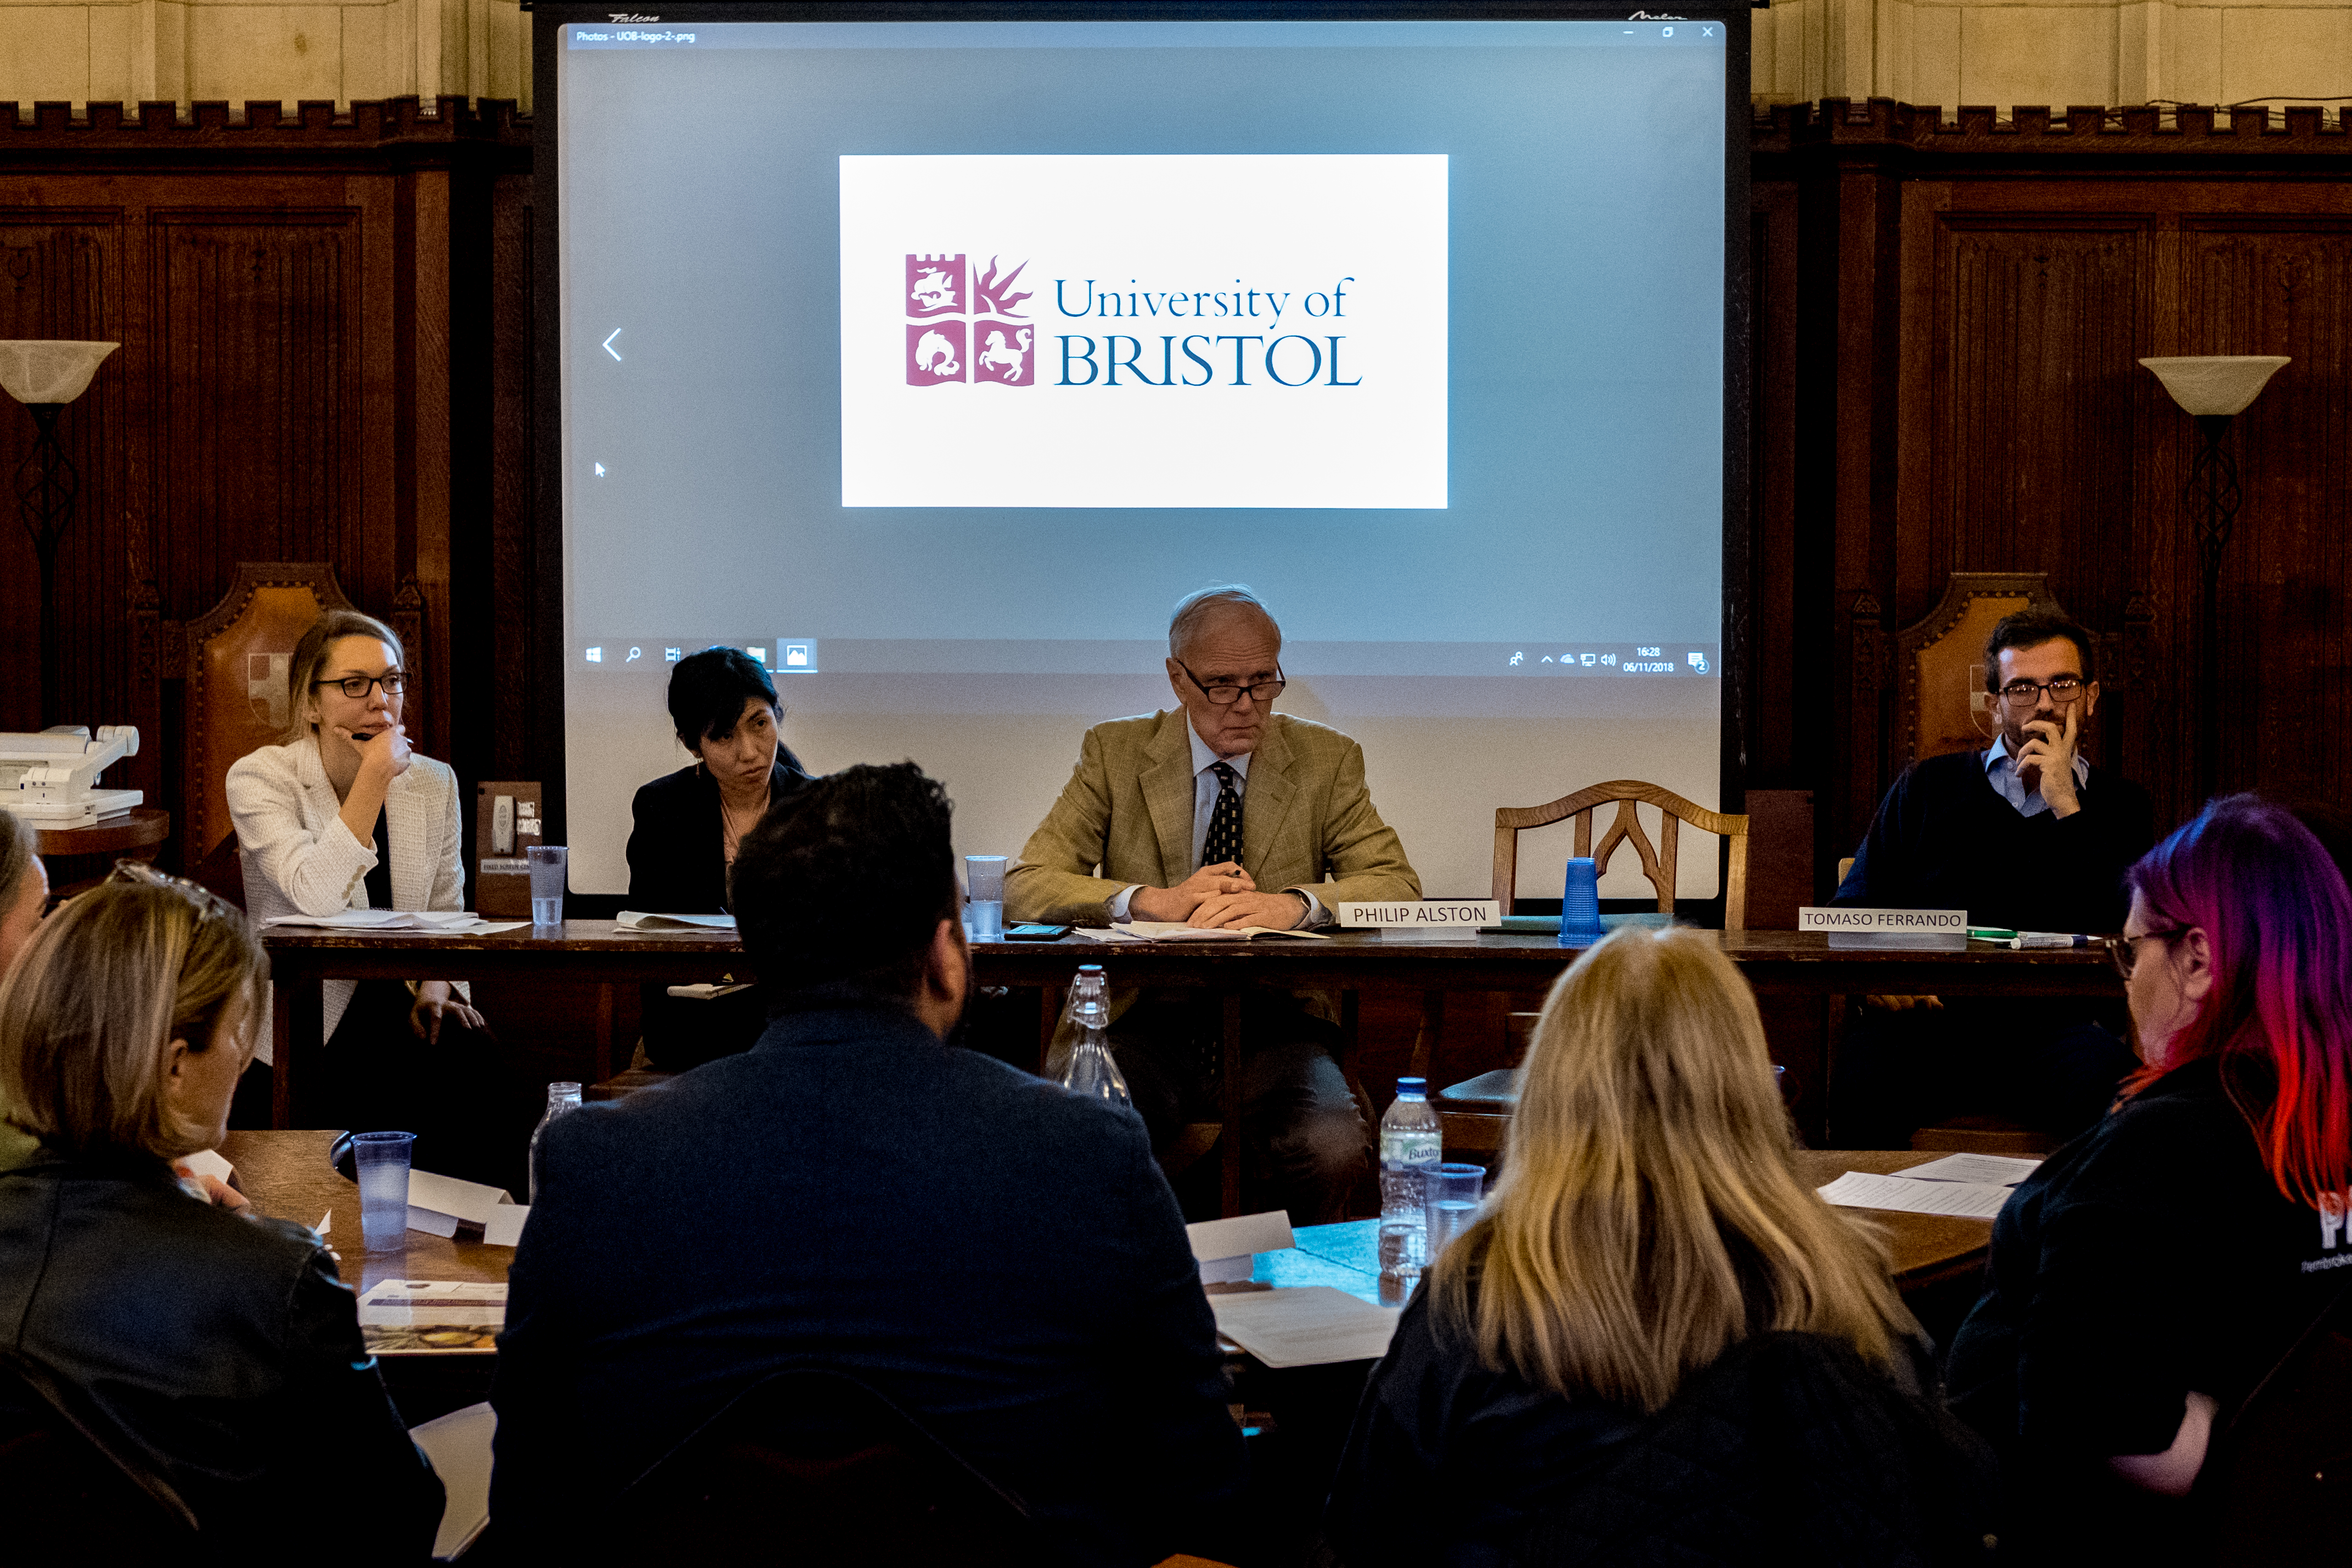 The Special Rapporteur hears from experts on rural poverty in Bristol - C Bassam Khawaja 2018